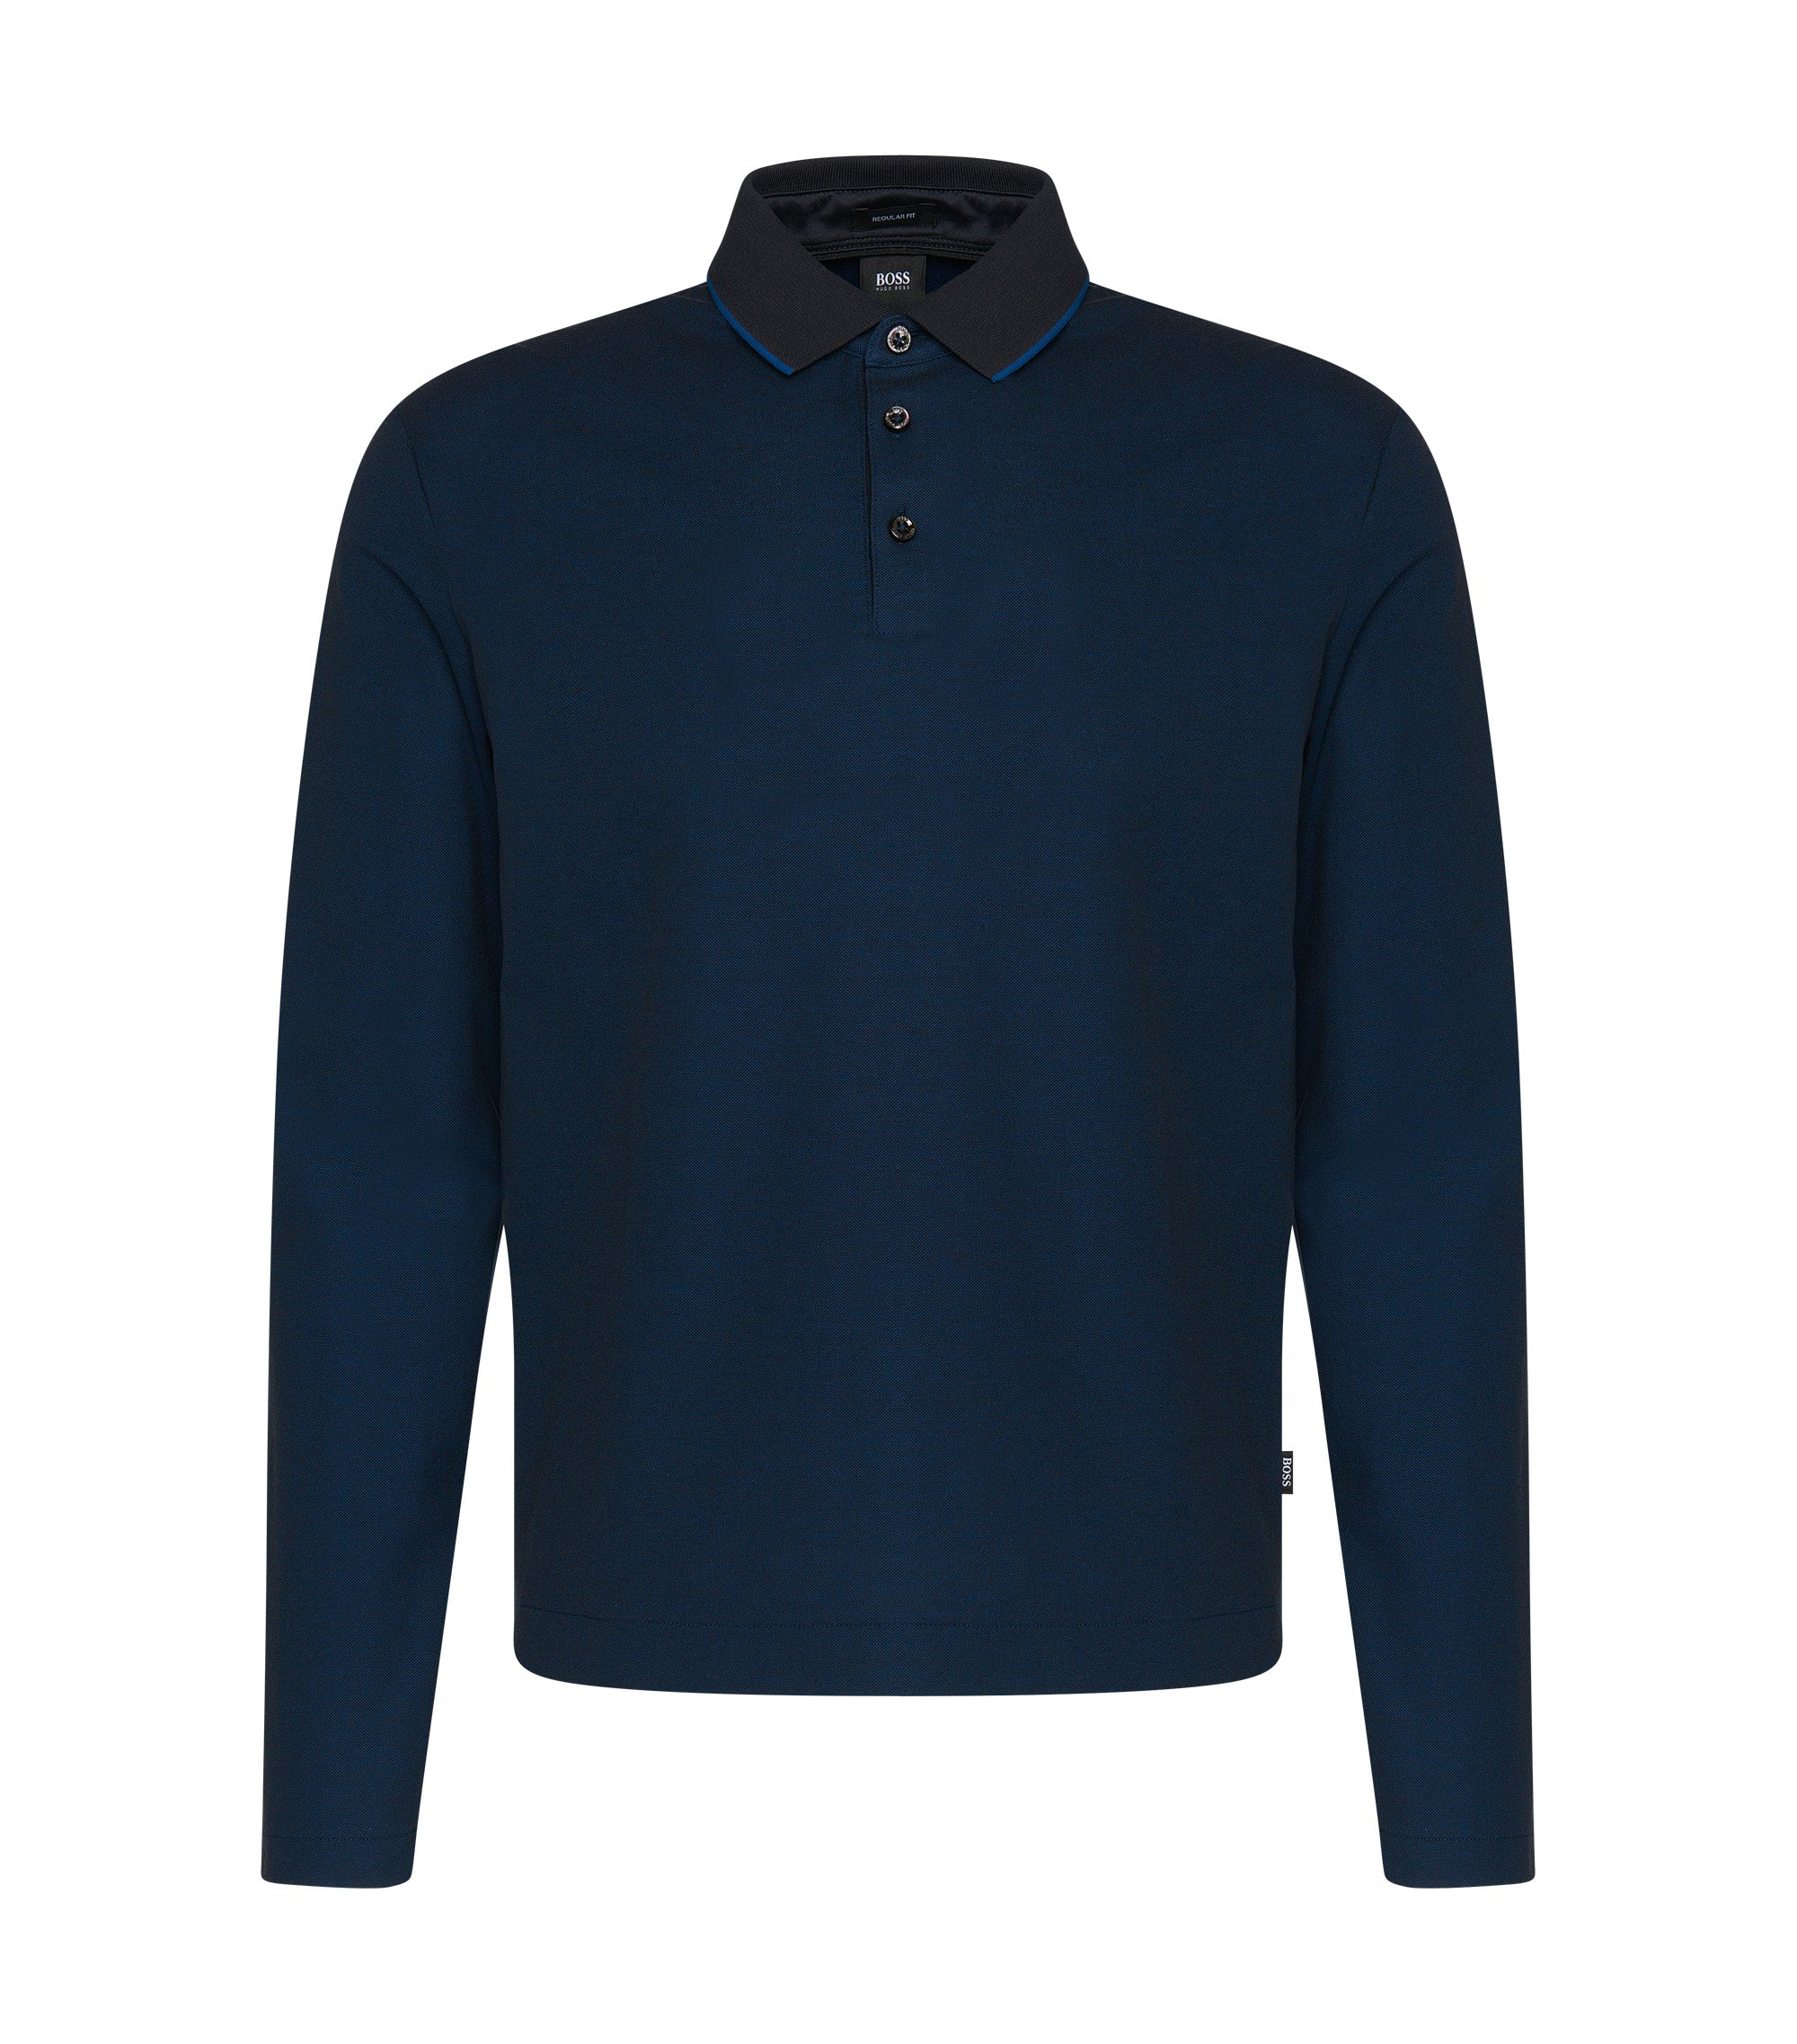 'Pado' | Regular Fit, Cotton Pique Polo, Dark Blue